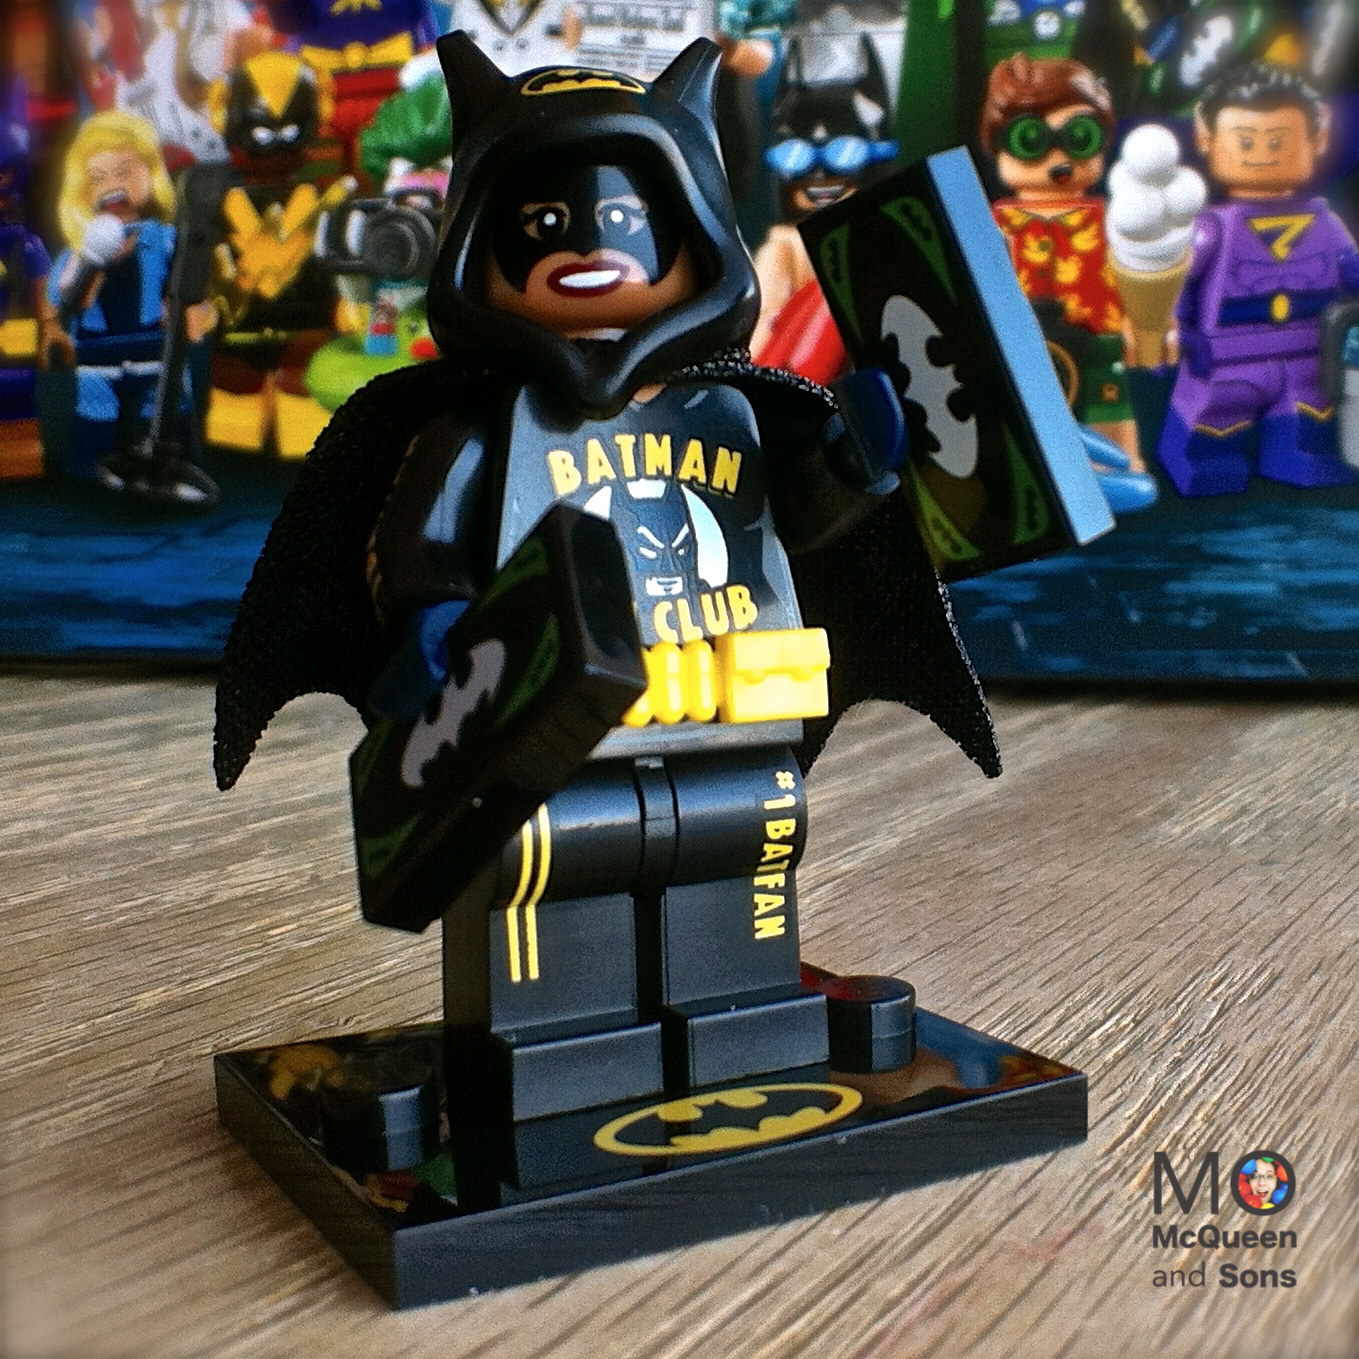 Lego Batman Movie Series 2 Bat Merch Batgirl 11 Minifigure 71020 Batfan